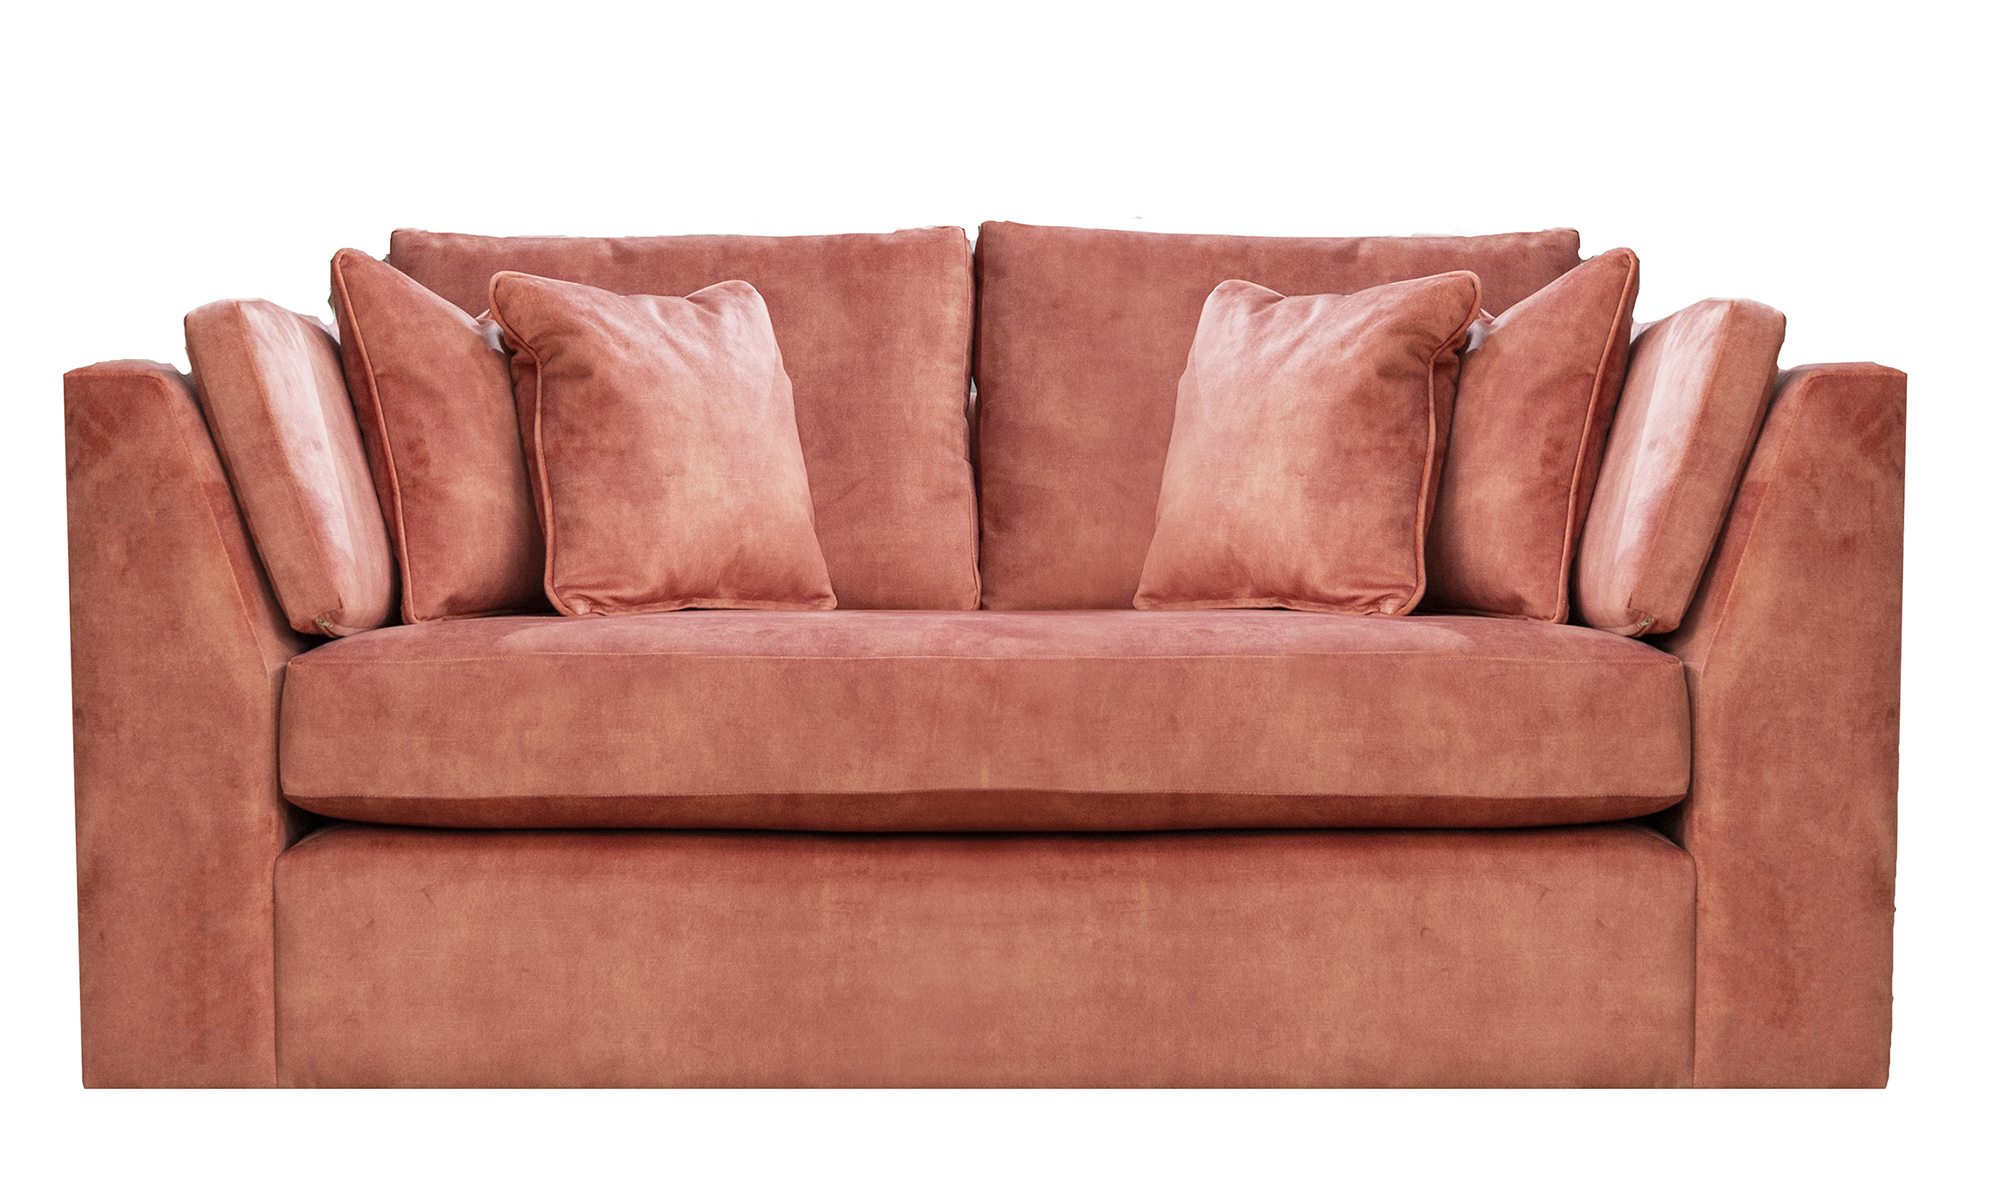 Como 2 Seater Sofa in Lovely Coral, Gold Collection Fabric